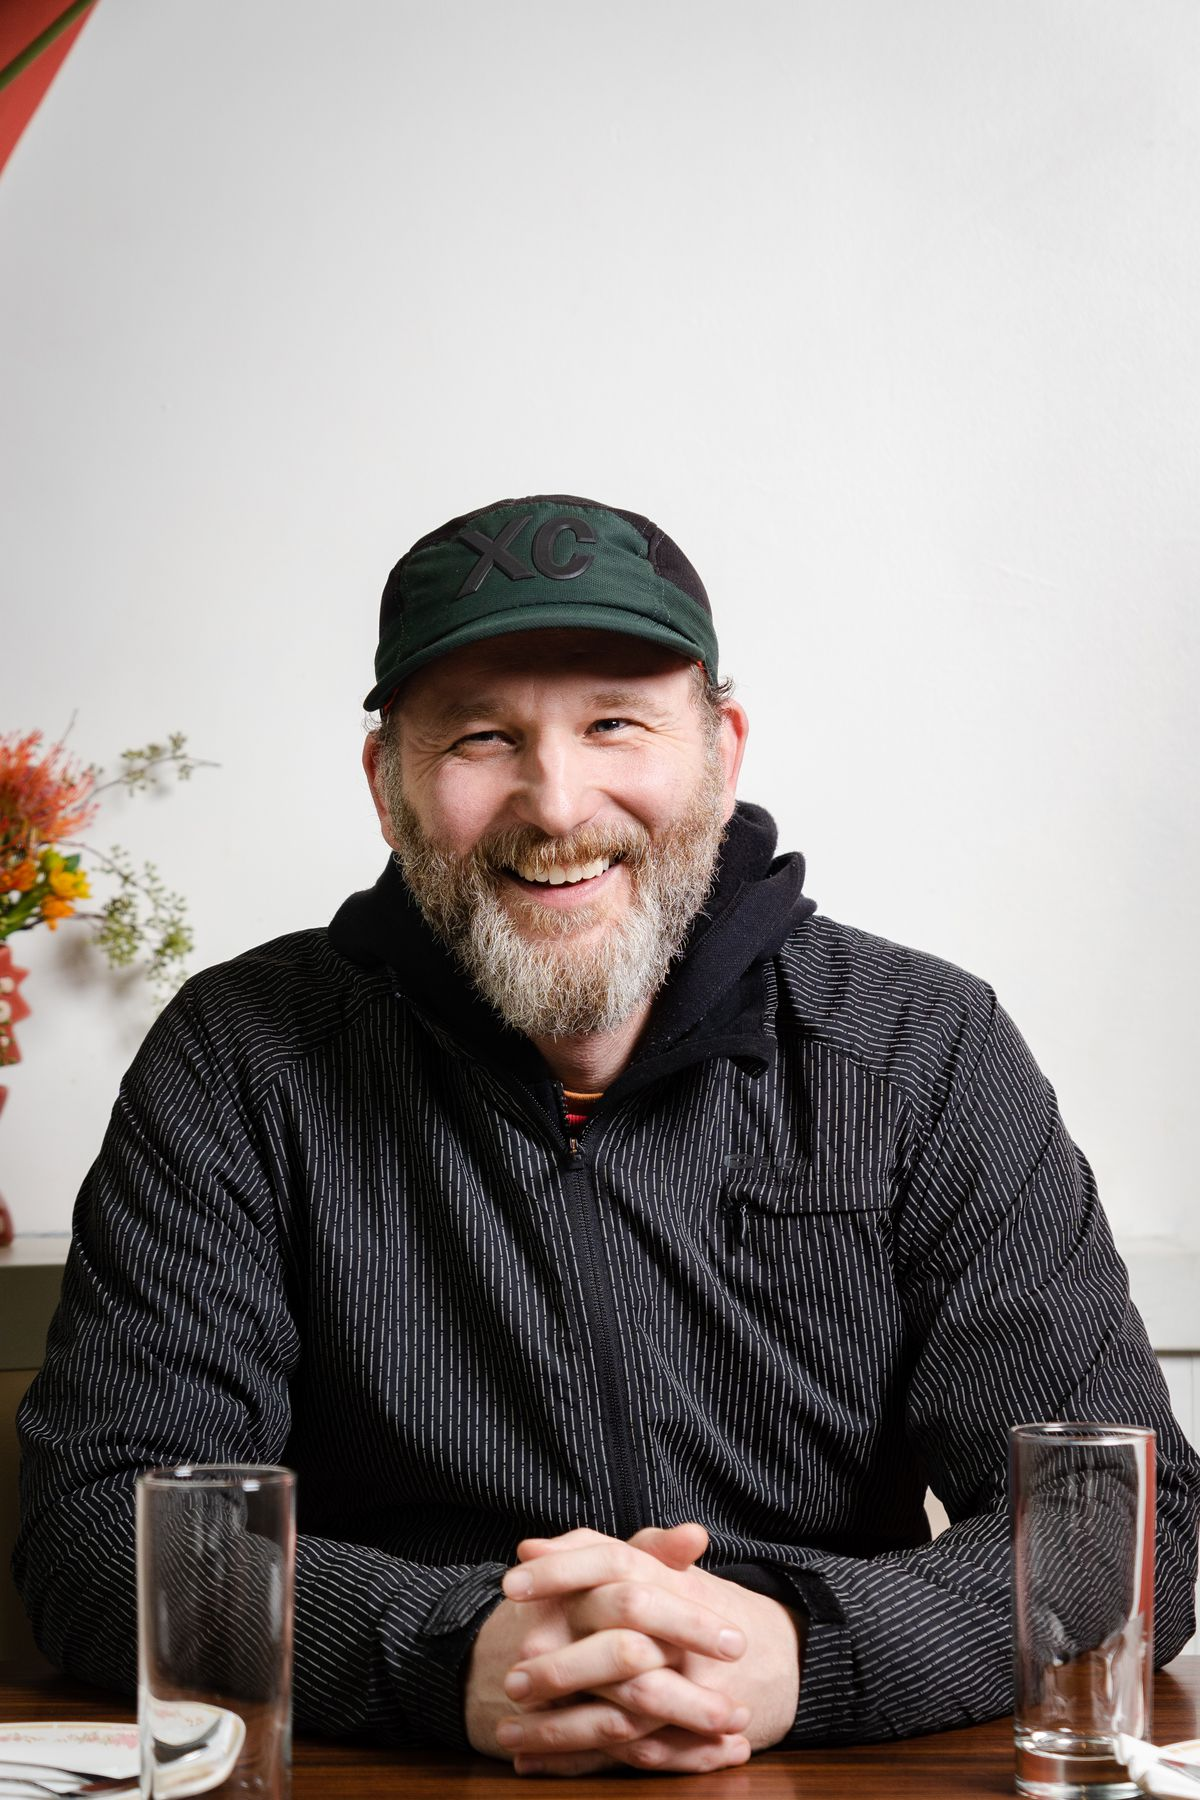 Eric Nelson, a co-owner of Eem, smiles as he sits at a table holding his hands. He's a bearded man wearing a zip-up hoodie and a green cap.